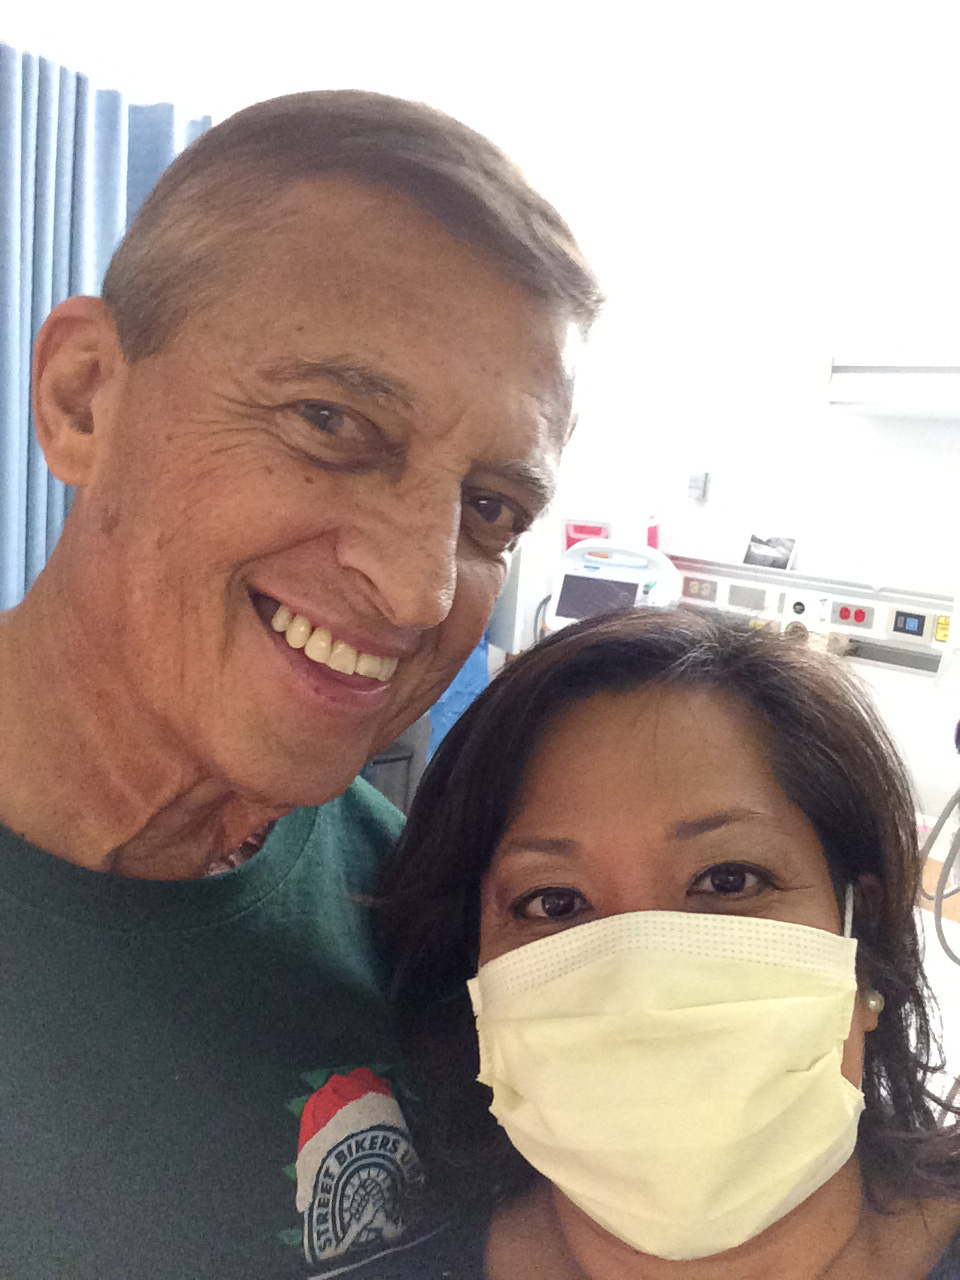 My husband and I at The Queen's Medical Center. I had to wear a mask to keep from giving him any germs.